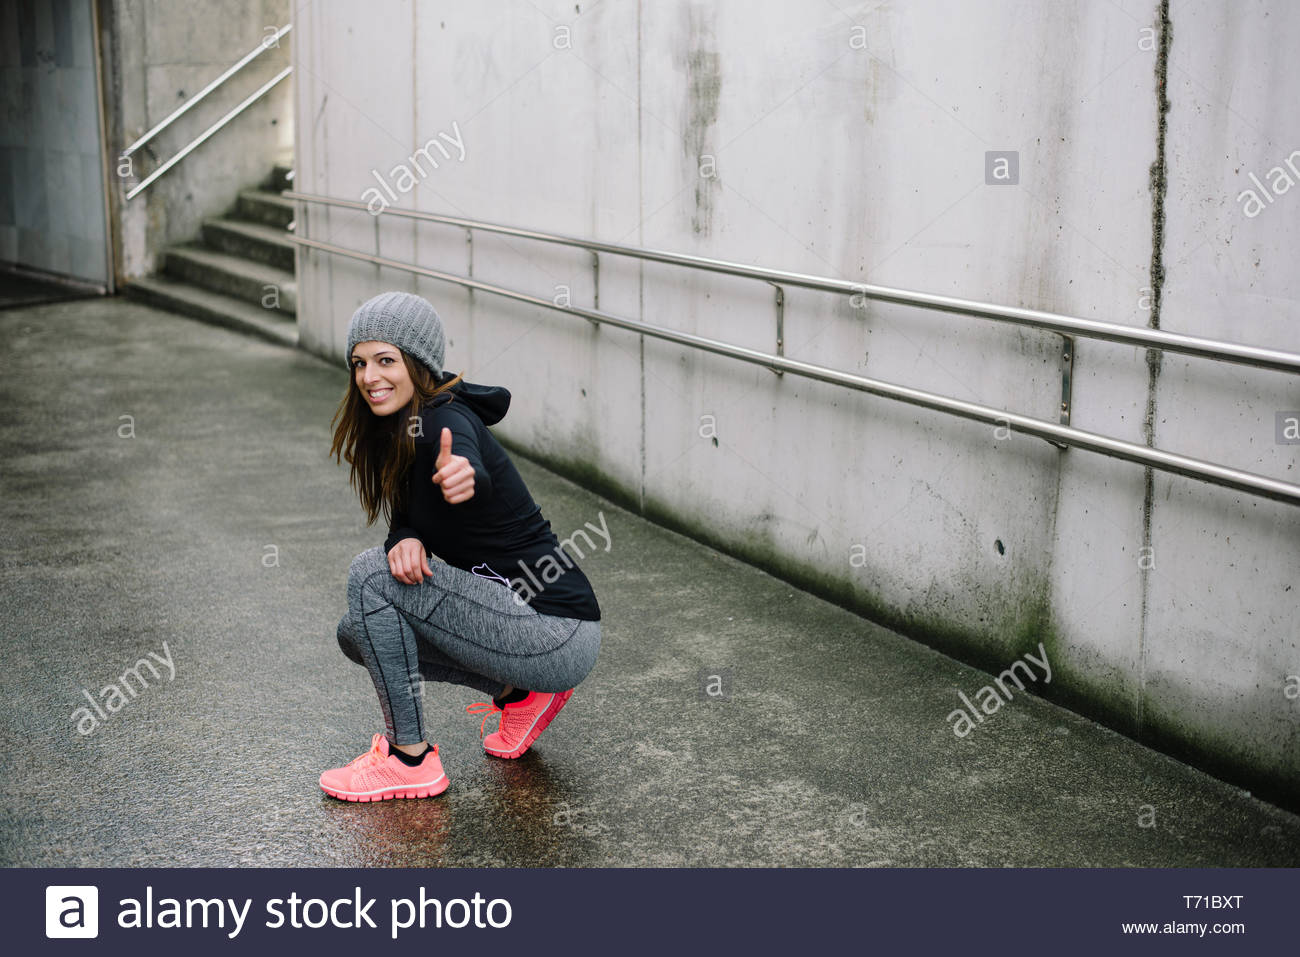 Sporty woman taking a rest during urban outdoor morning fitness and running workout. Female athlete doing thumbs up success gesture. - Stock Image